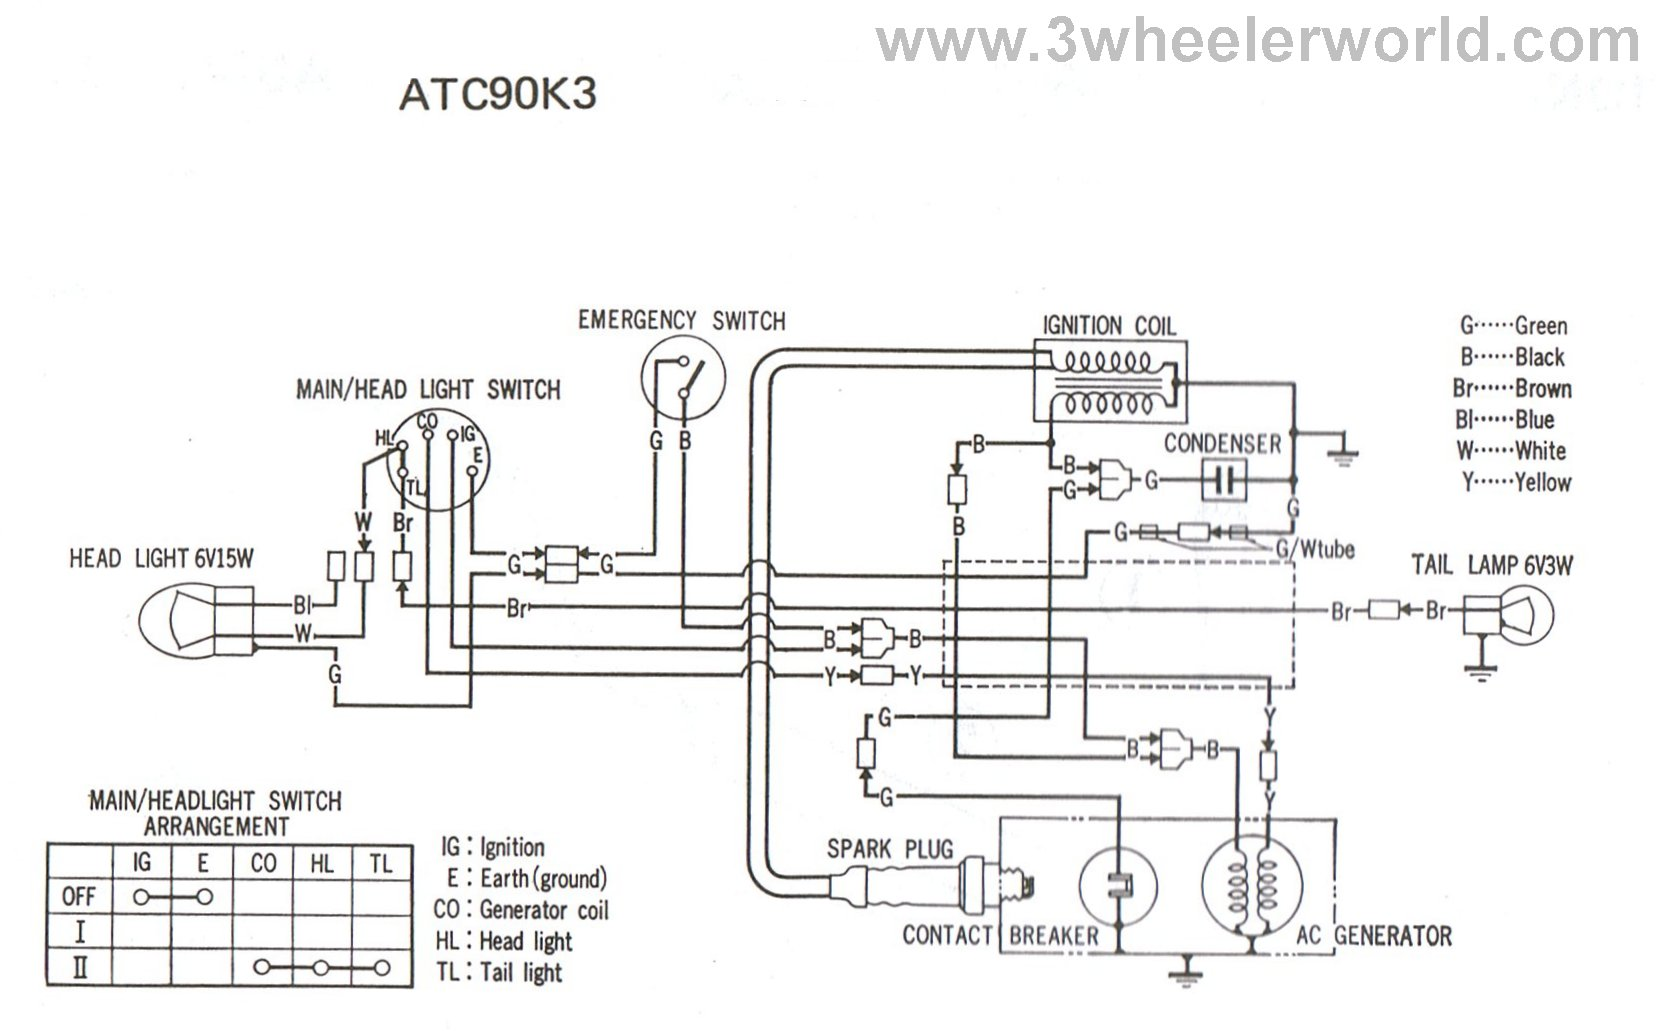 Tech 1982 Kawasaki Wiring Diagrams Guide And Troubleshooting Of Diagram For K Z Ltd 750 3 Wheeler World Help Honda 200 Kz1000 Petcock Fuel Valve